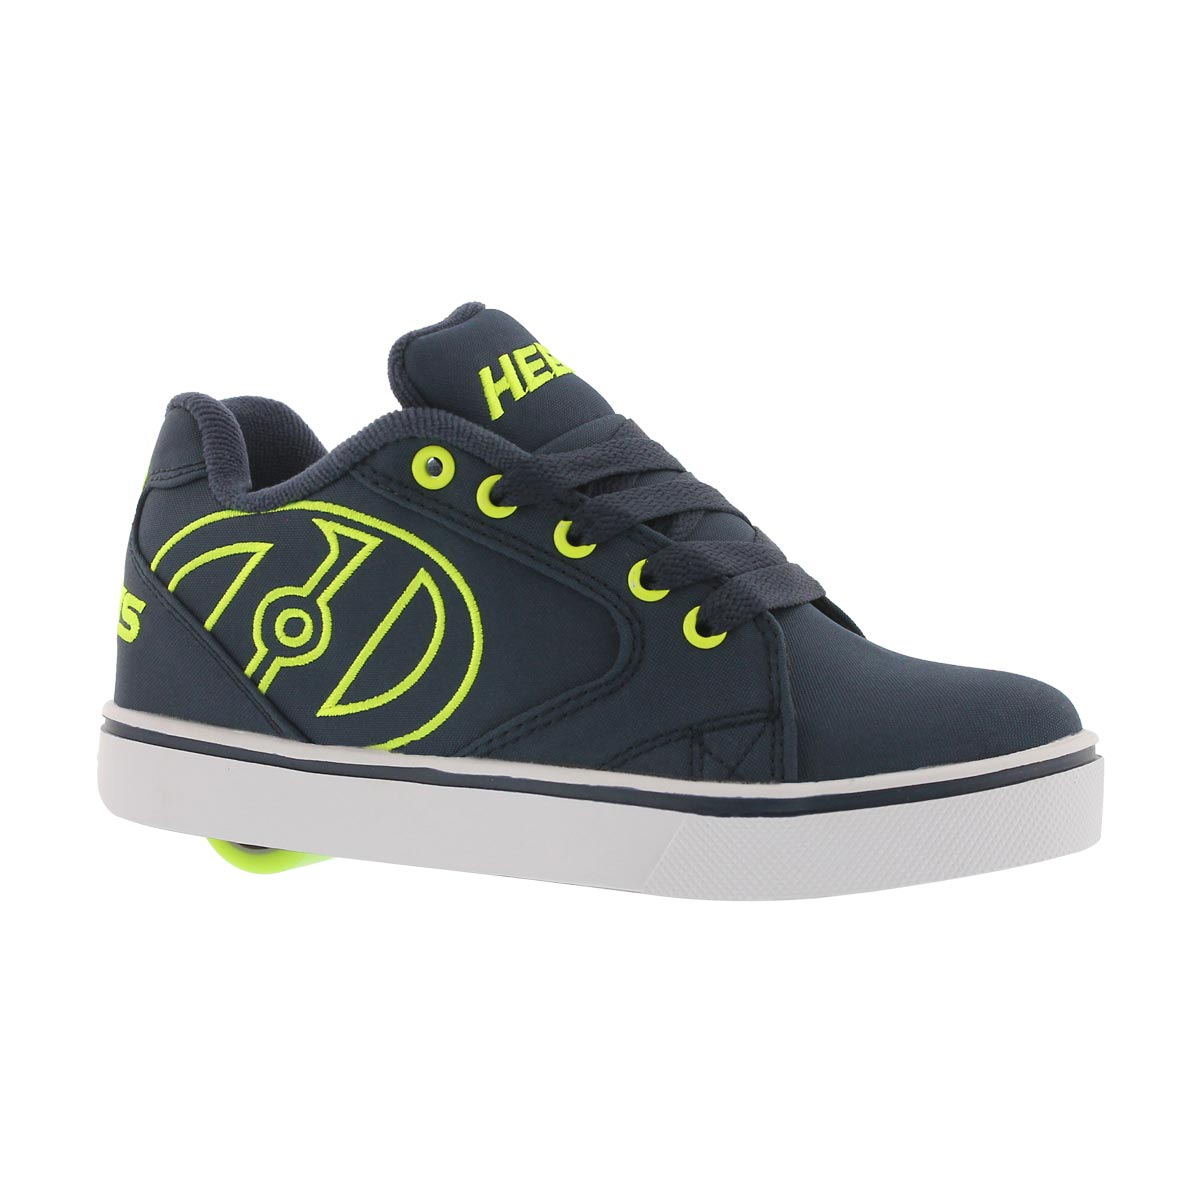 Boys' VOPEL navy/bright yellow skate sneakers